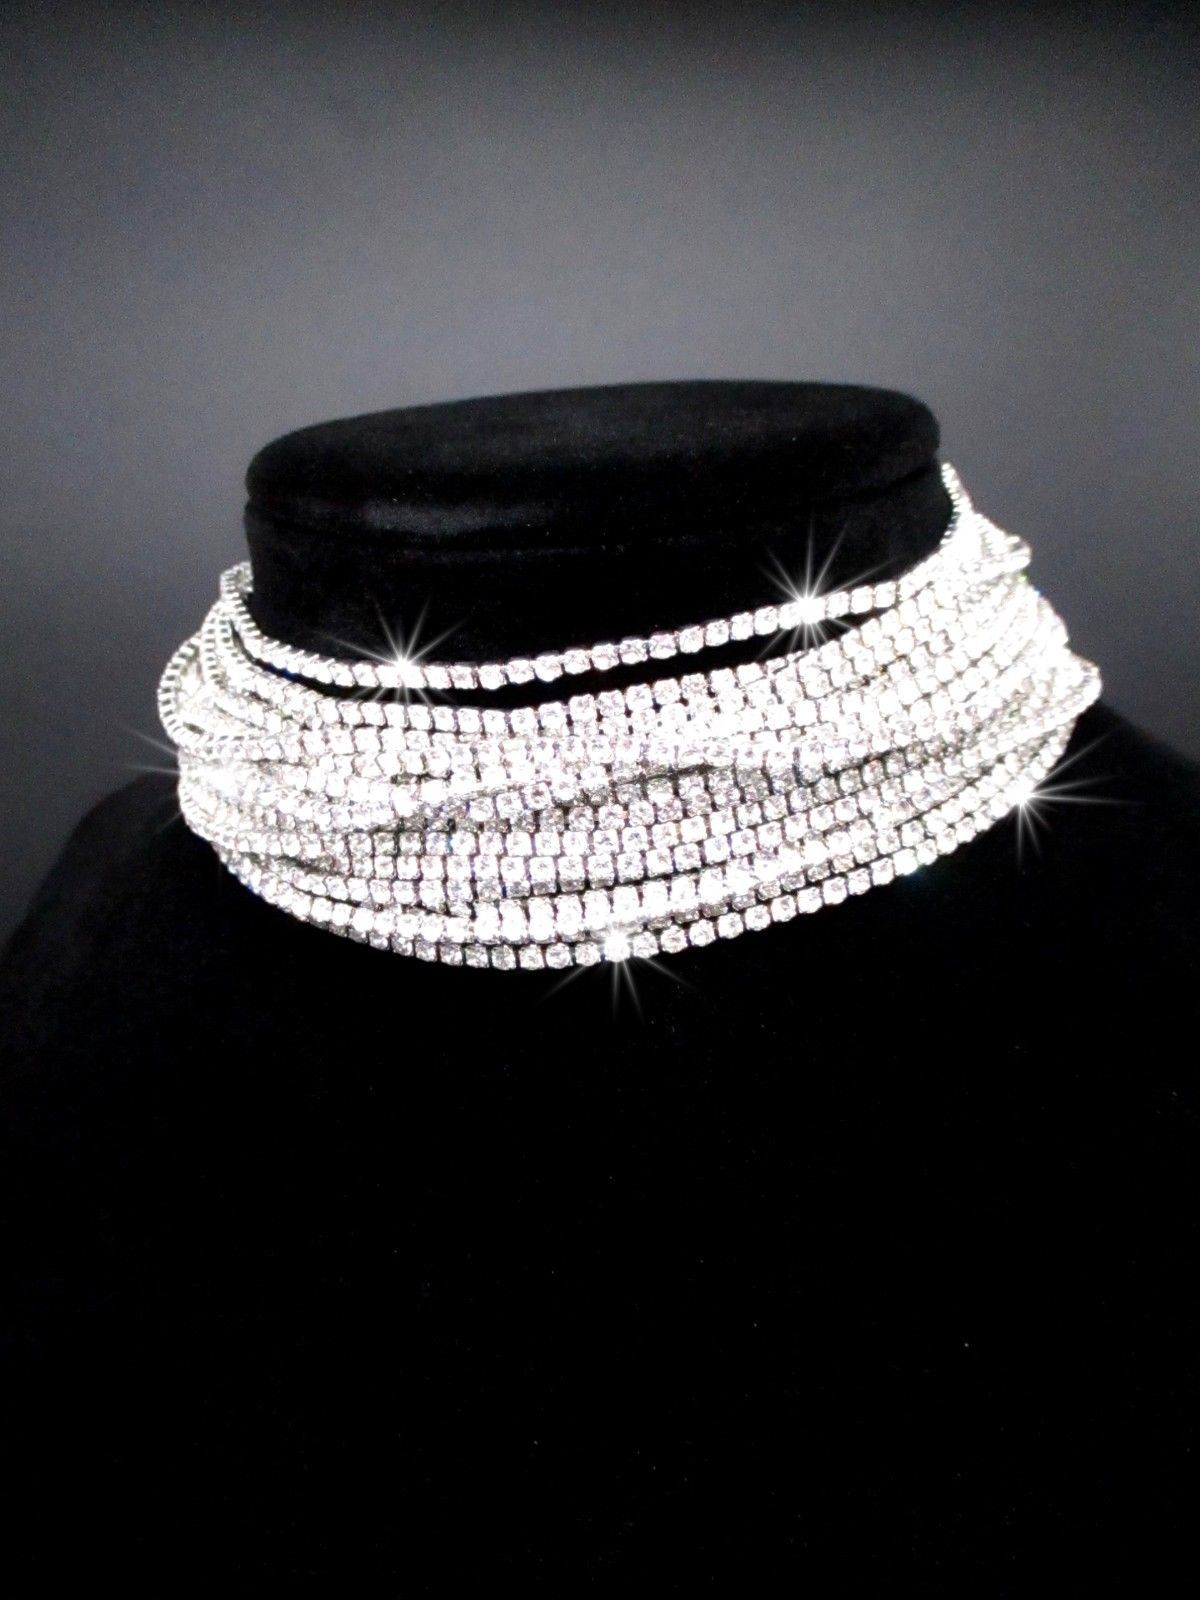 WOMEN FASHION CHOKER NECKLACE BRIDAL SILVER GOLD JEWELRY SPARKLING BOHO CHOKER